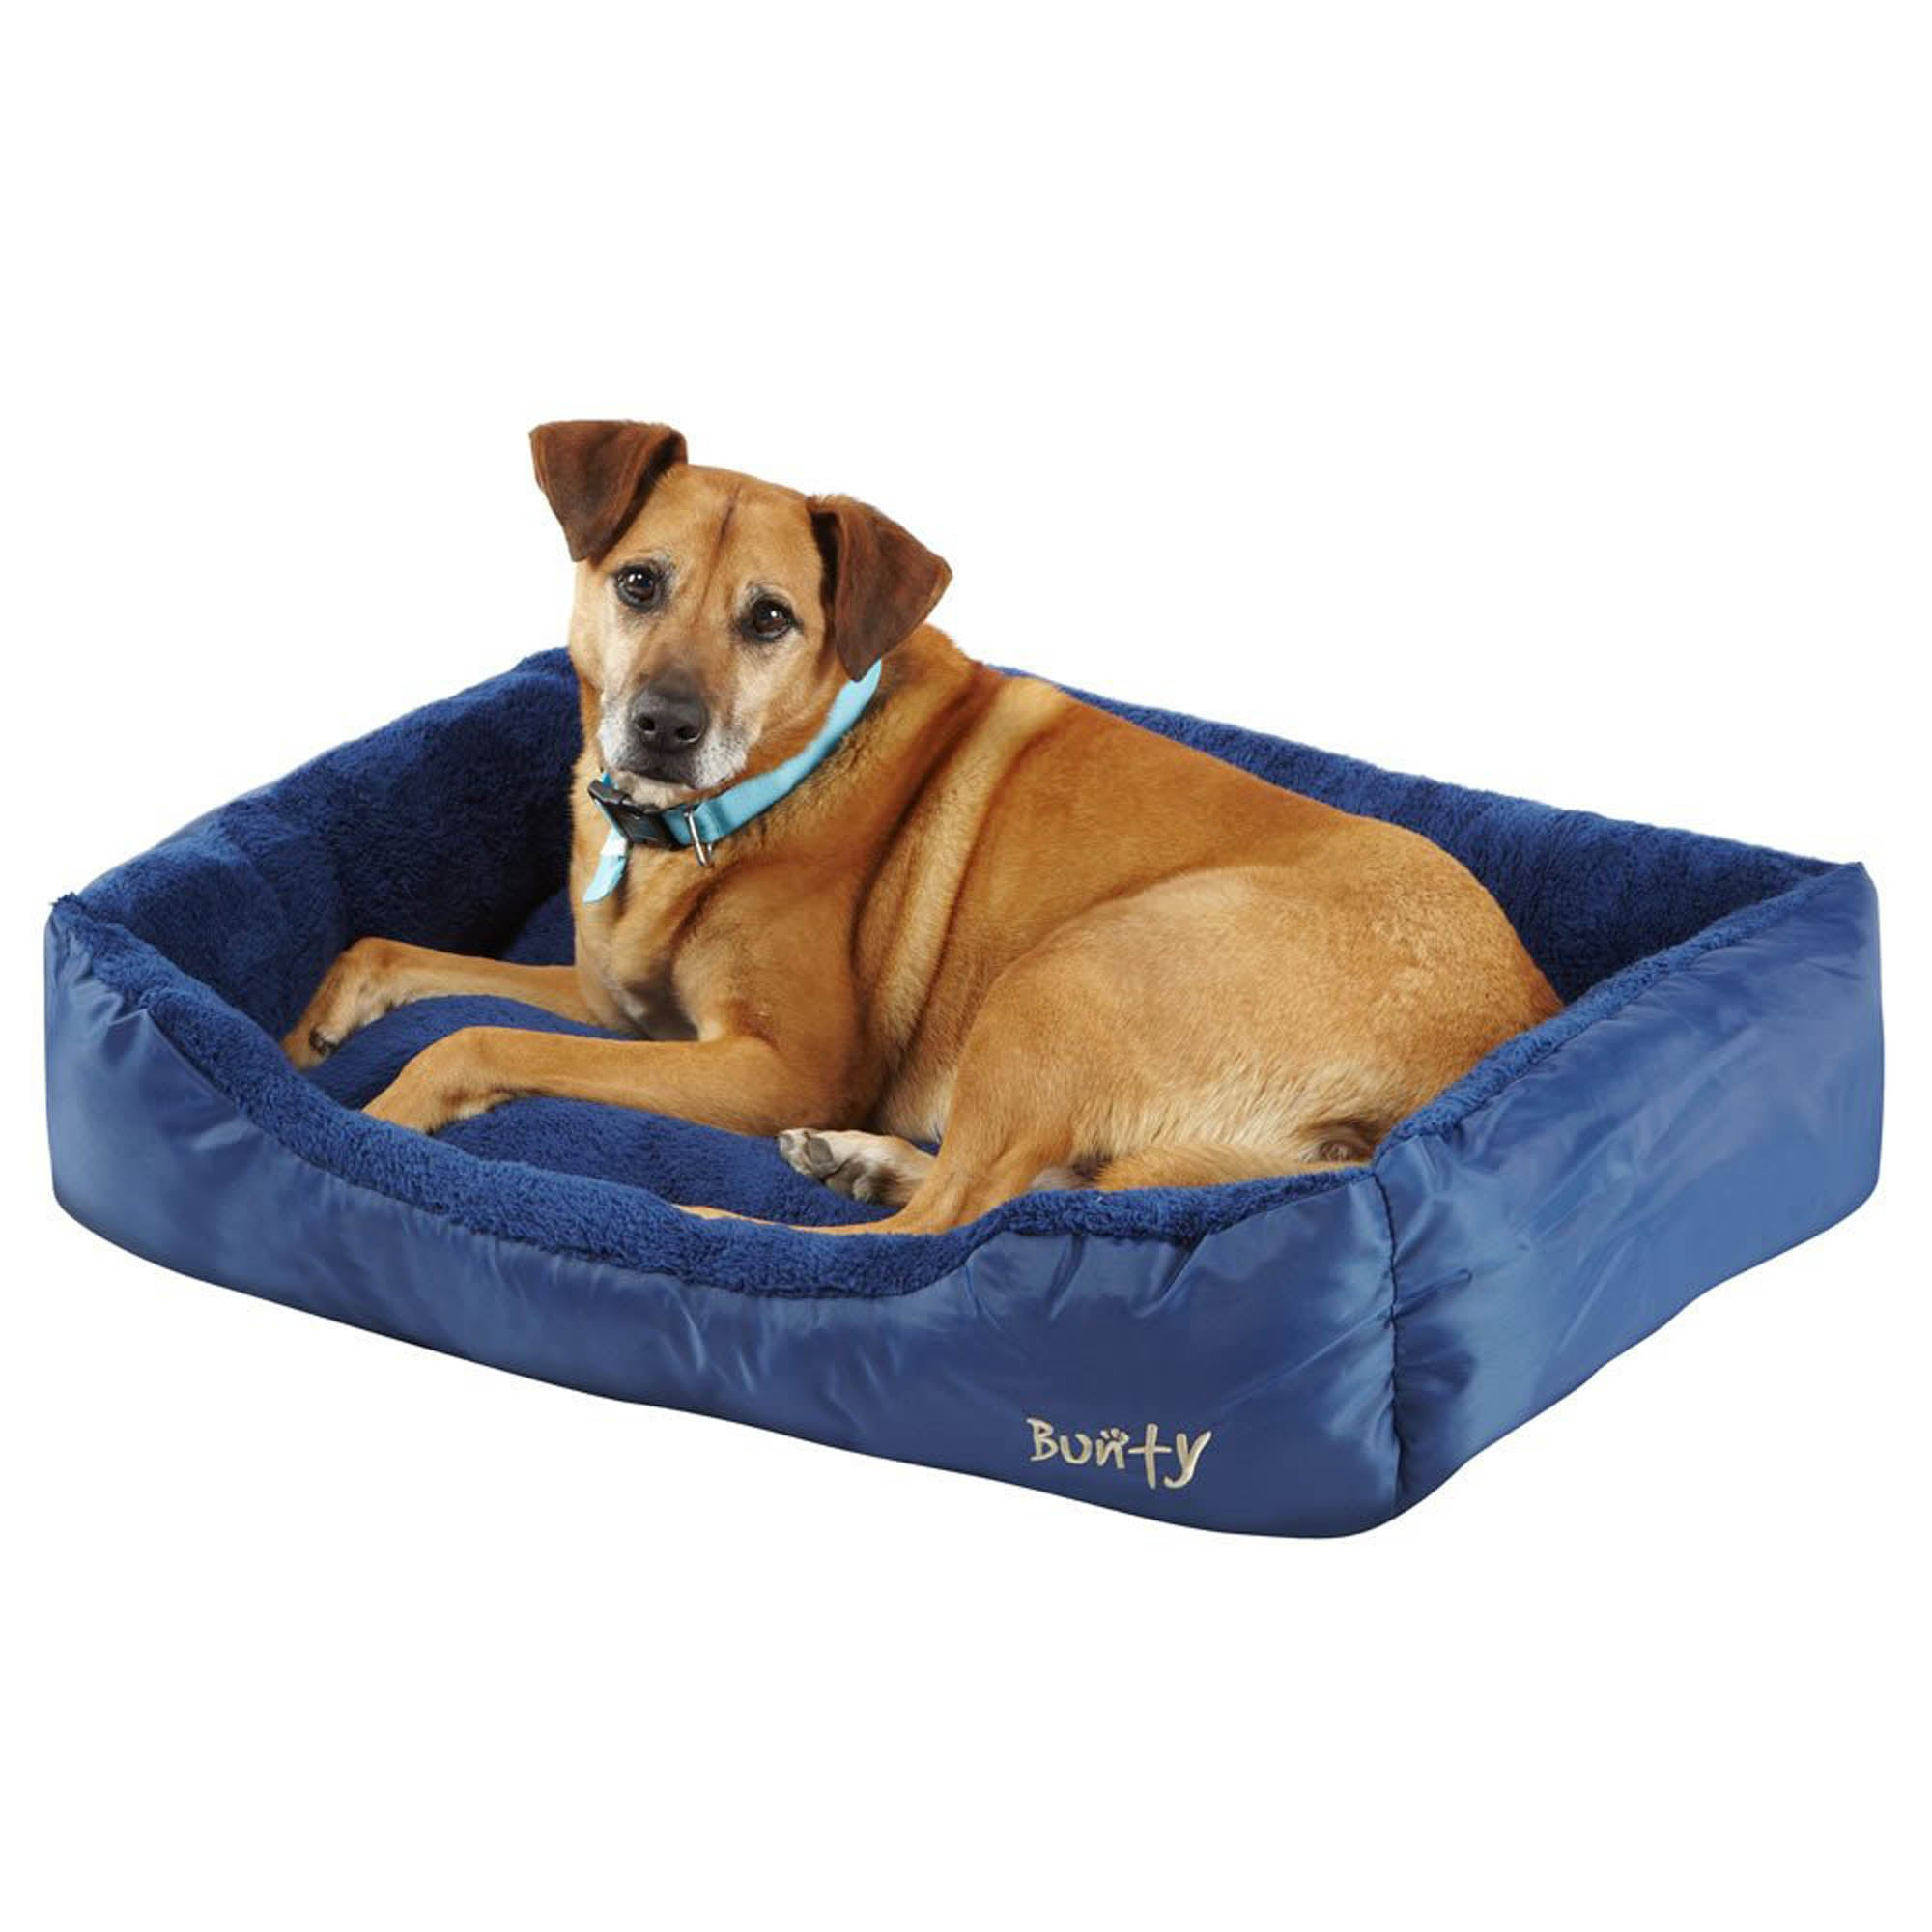 Bunty Blue Deluxe Dog Bed Neptune (Blue)